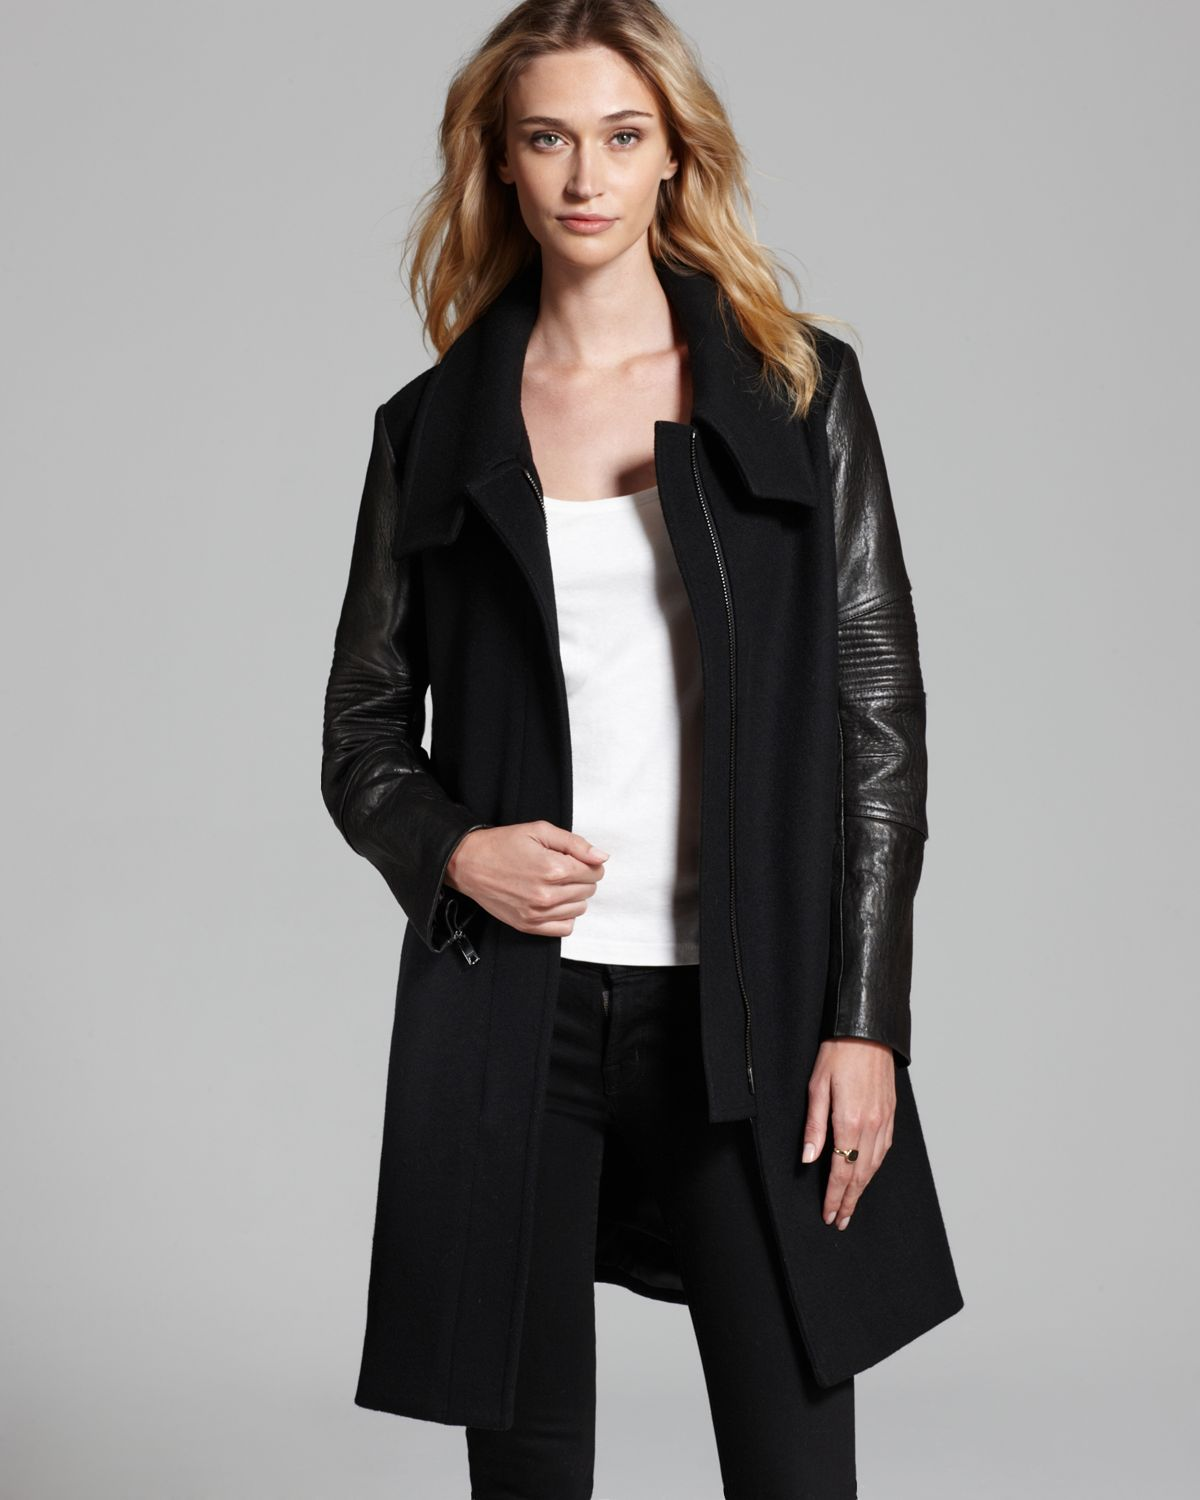 Jacket with leather sleeves